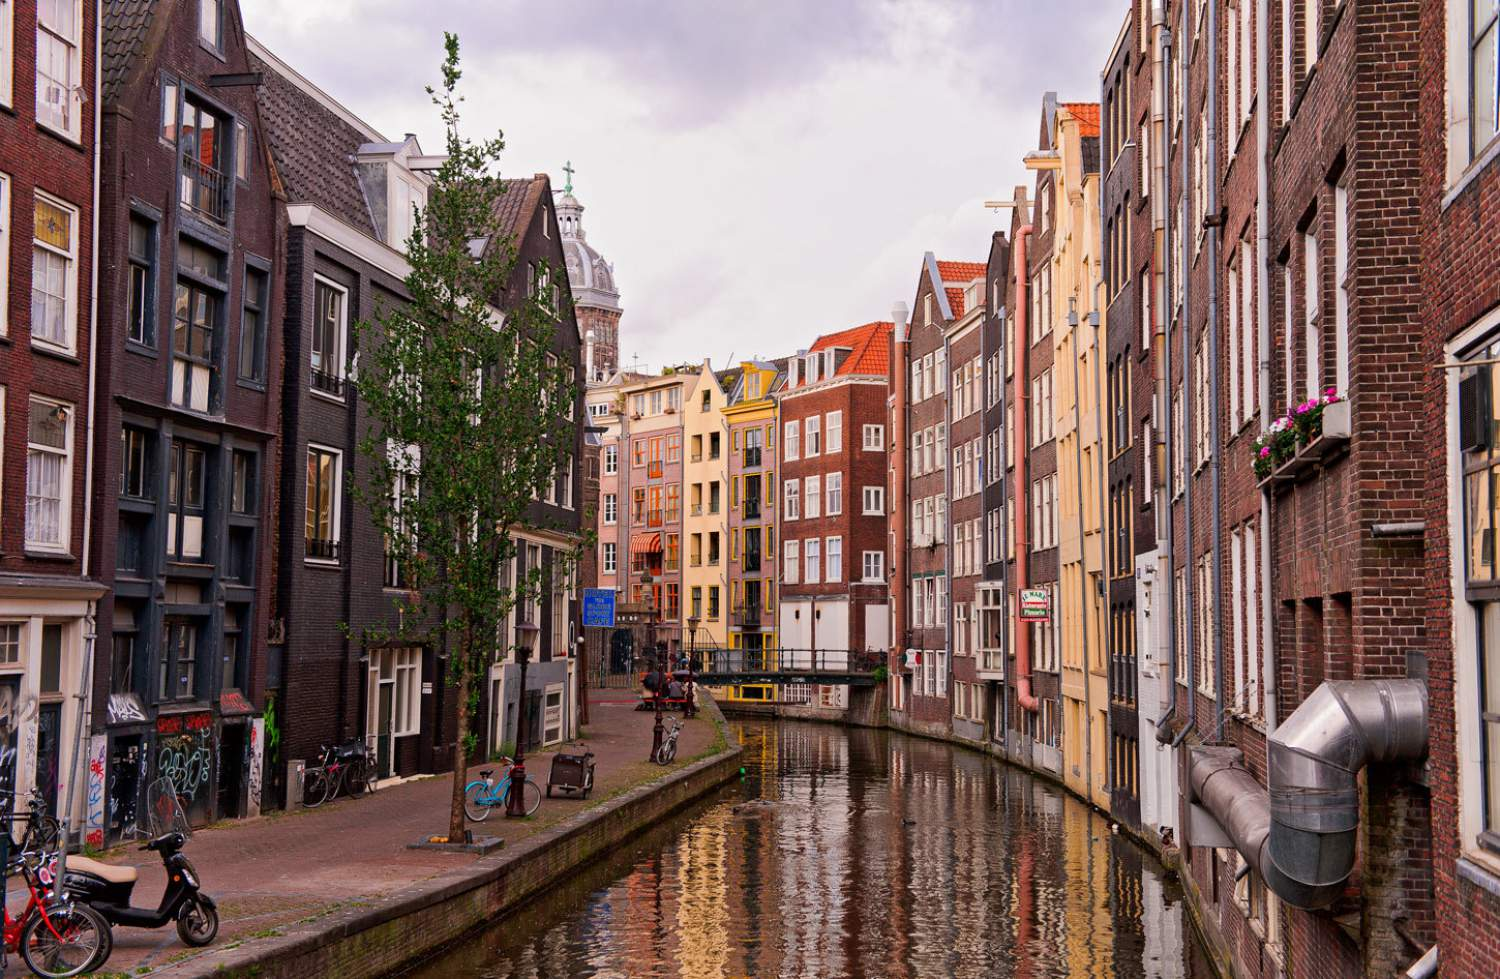 Houses by the canal, Amsterdam